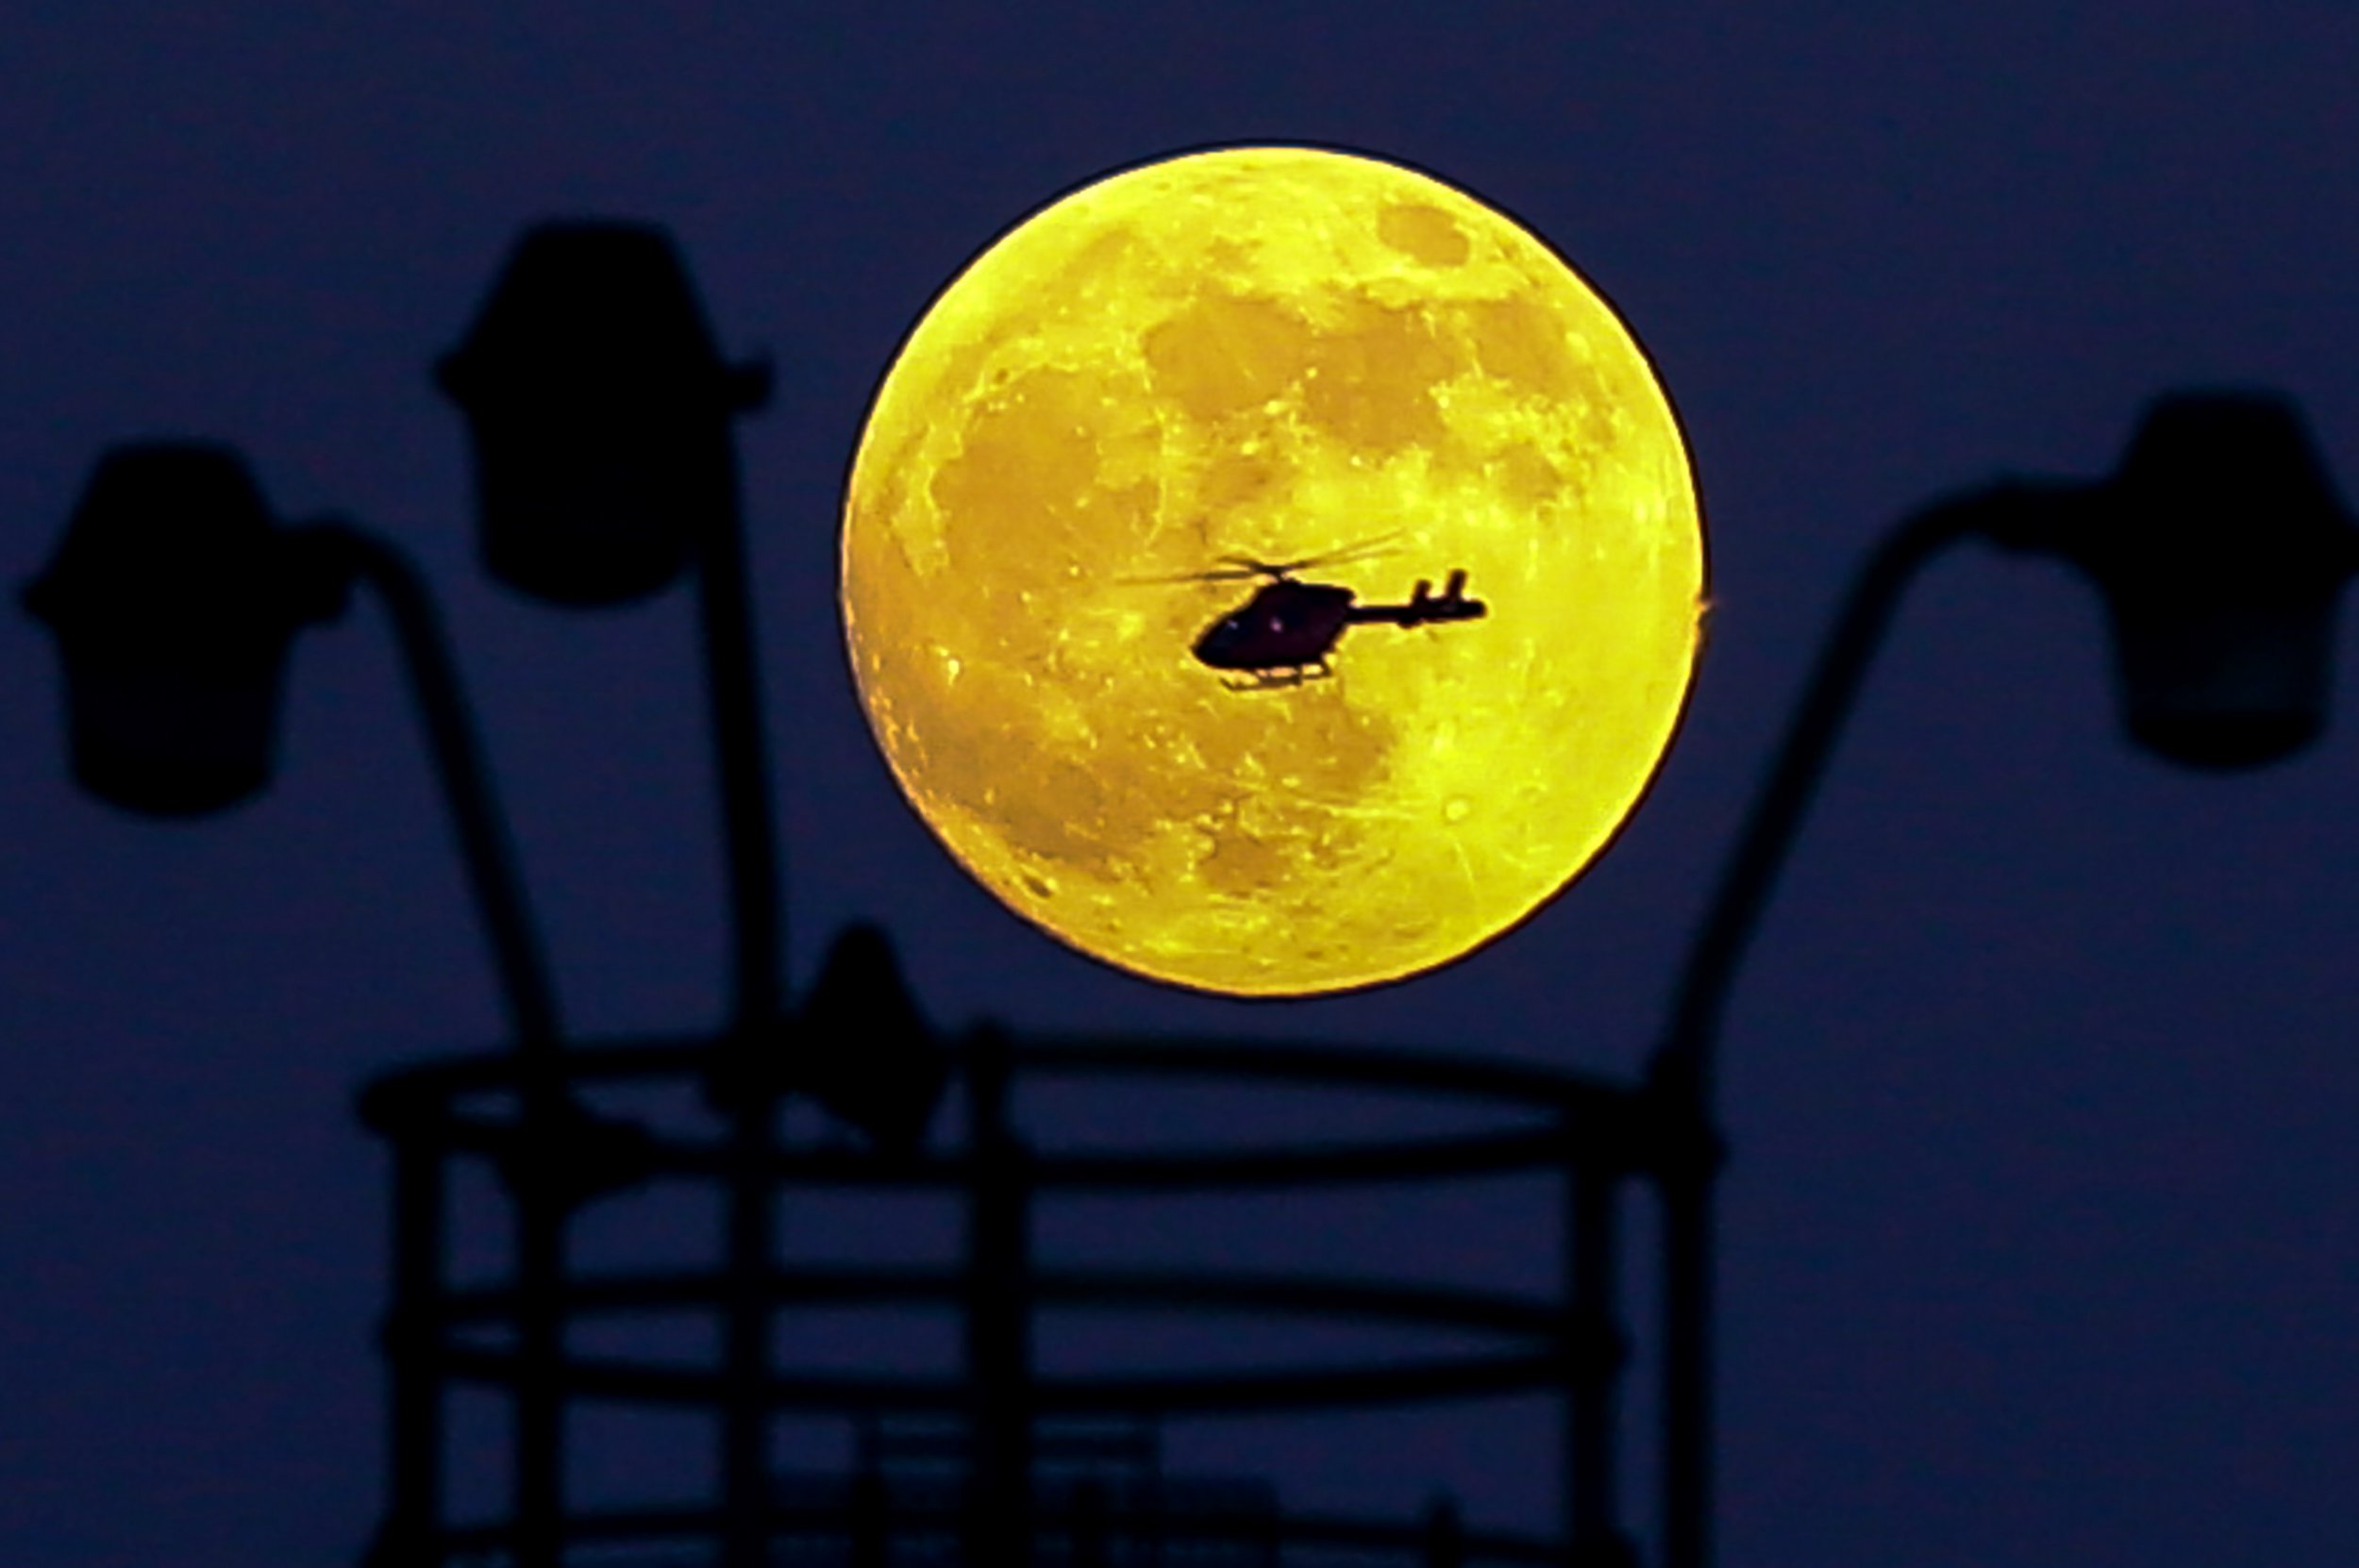 Mandatory Credit: Photo by Dinendra Haria/REX (10069292d) A helicopter flies in front of the Wolf Moon as it rises over the capital. The Wolf Moon, the Full Moon on January 20-21, 2019, is a Supermoon, making it look bigger and brighter than usual during the total lunar eclipse. 'Wolf Moon' rising over London, UK - 20 Jan 2019